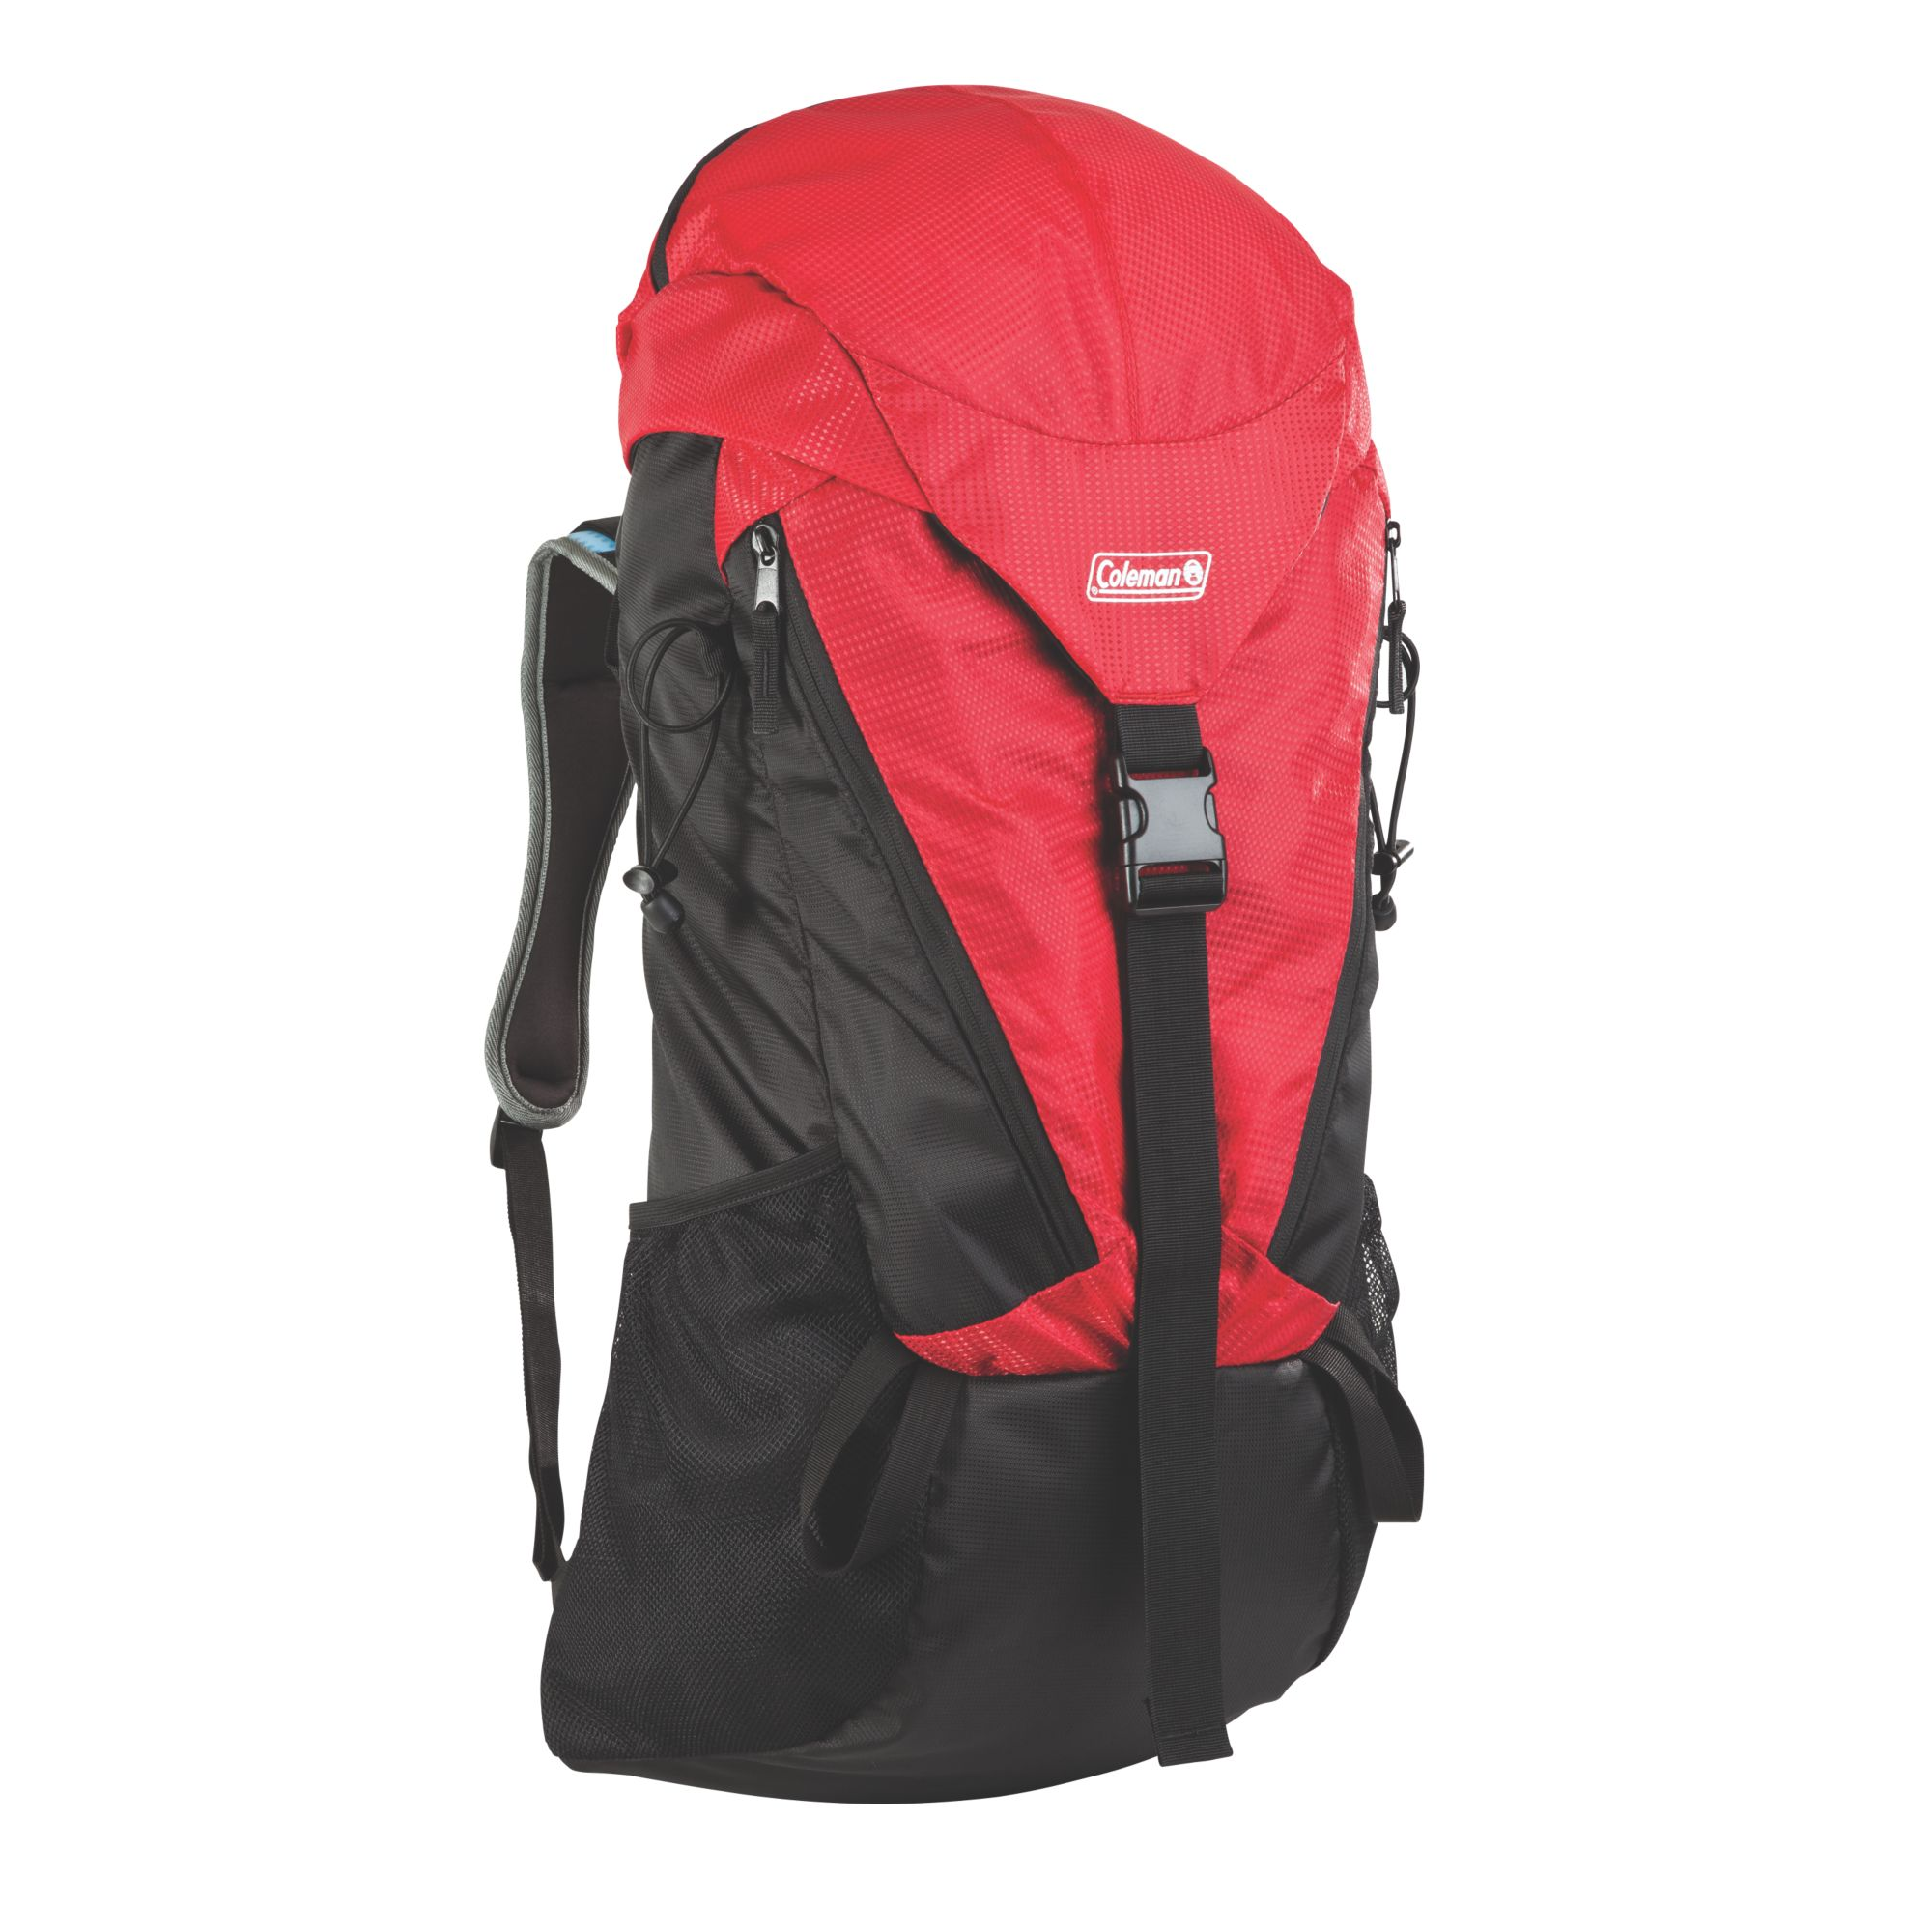 Outdoor Gear | Backpacks | Coleman